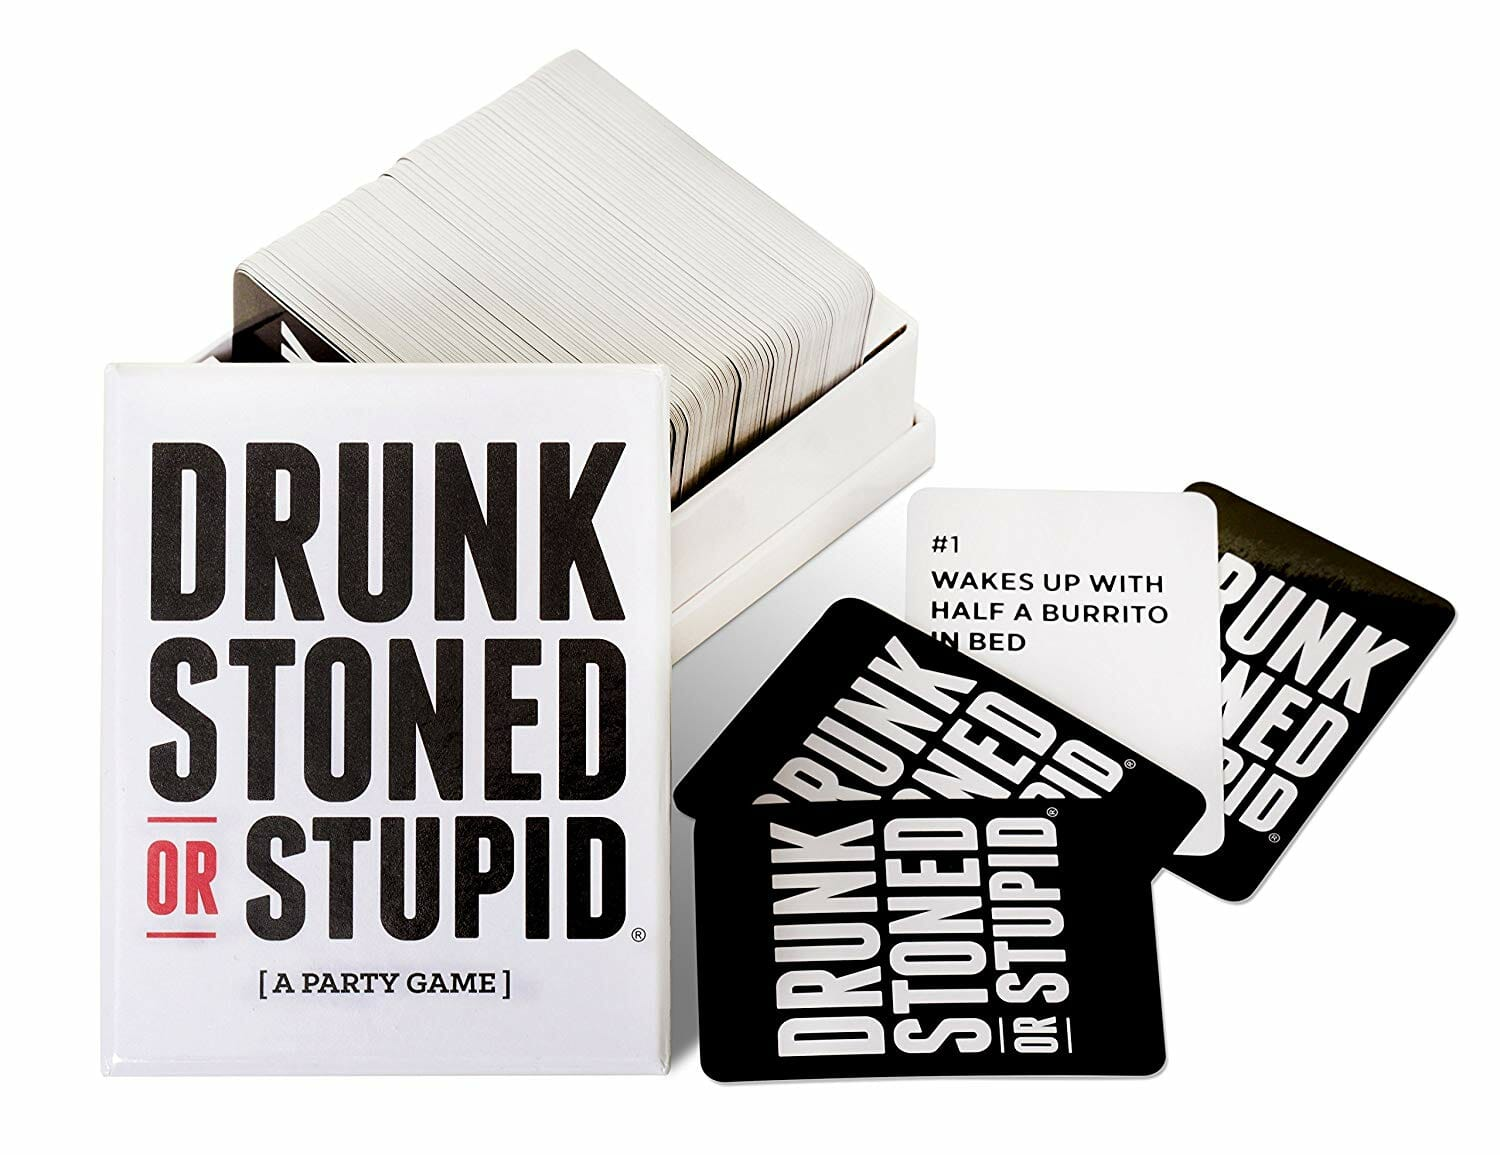 adult-party-games-drunk-stoned-stupid